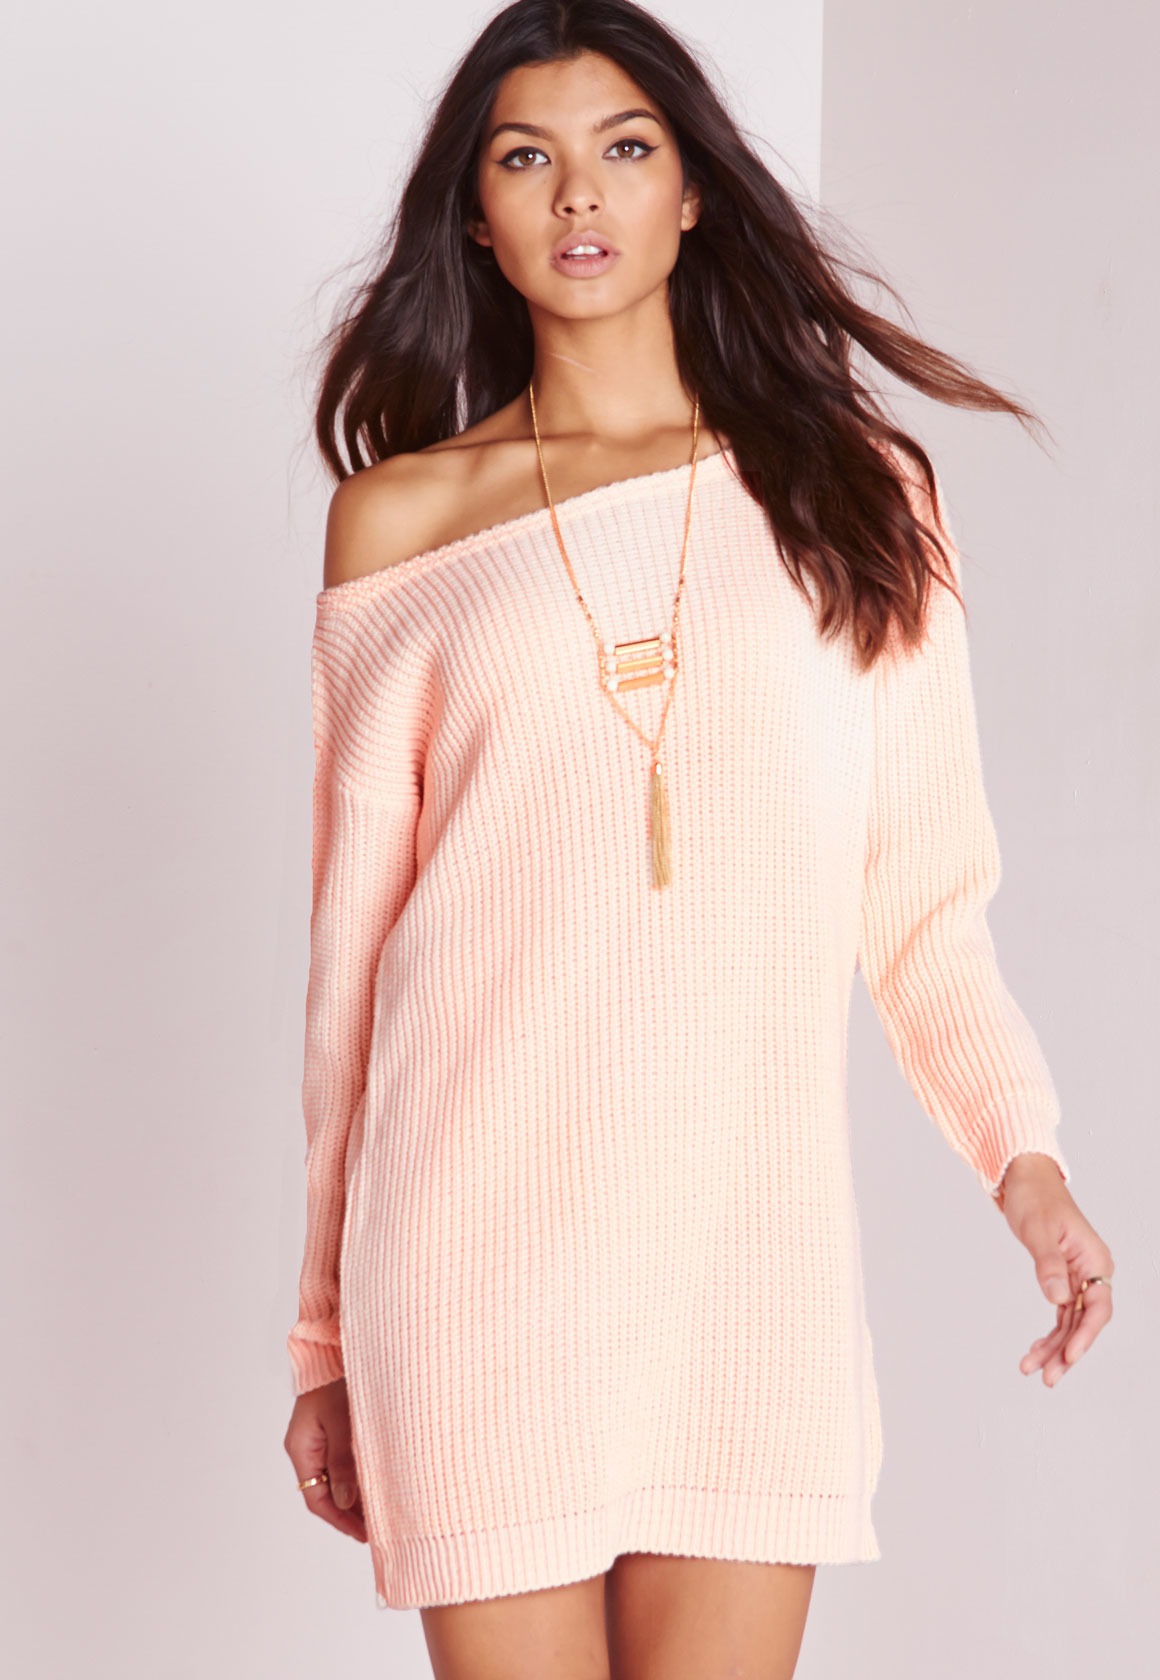 Missguided Off Shoulder Knitted Jumper Dress Pink in Pink | Lyst